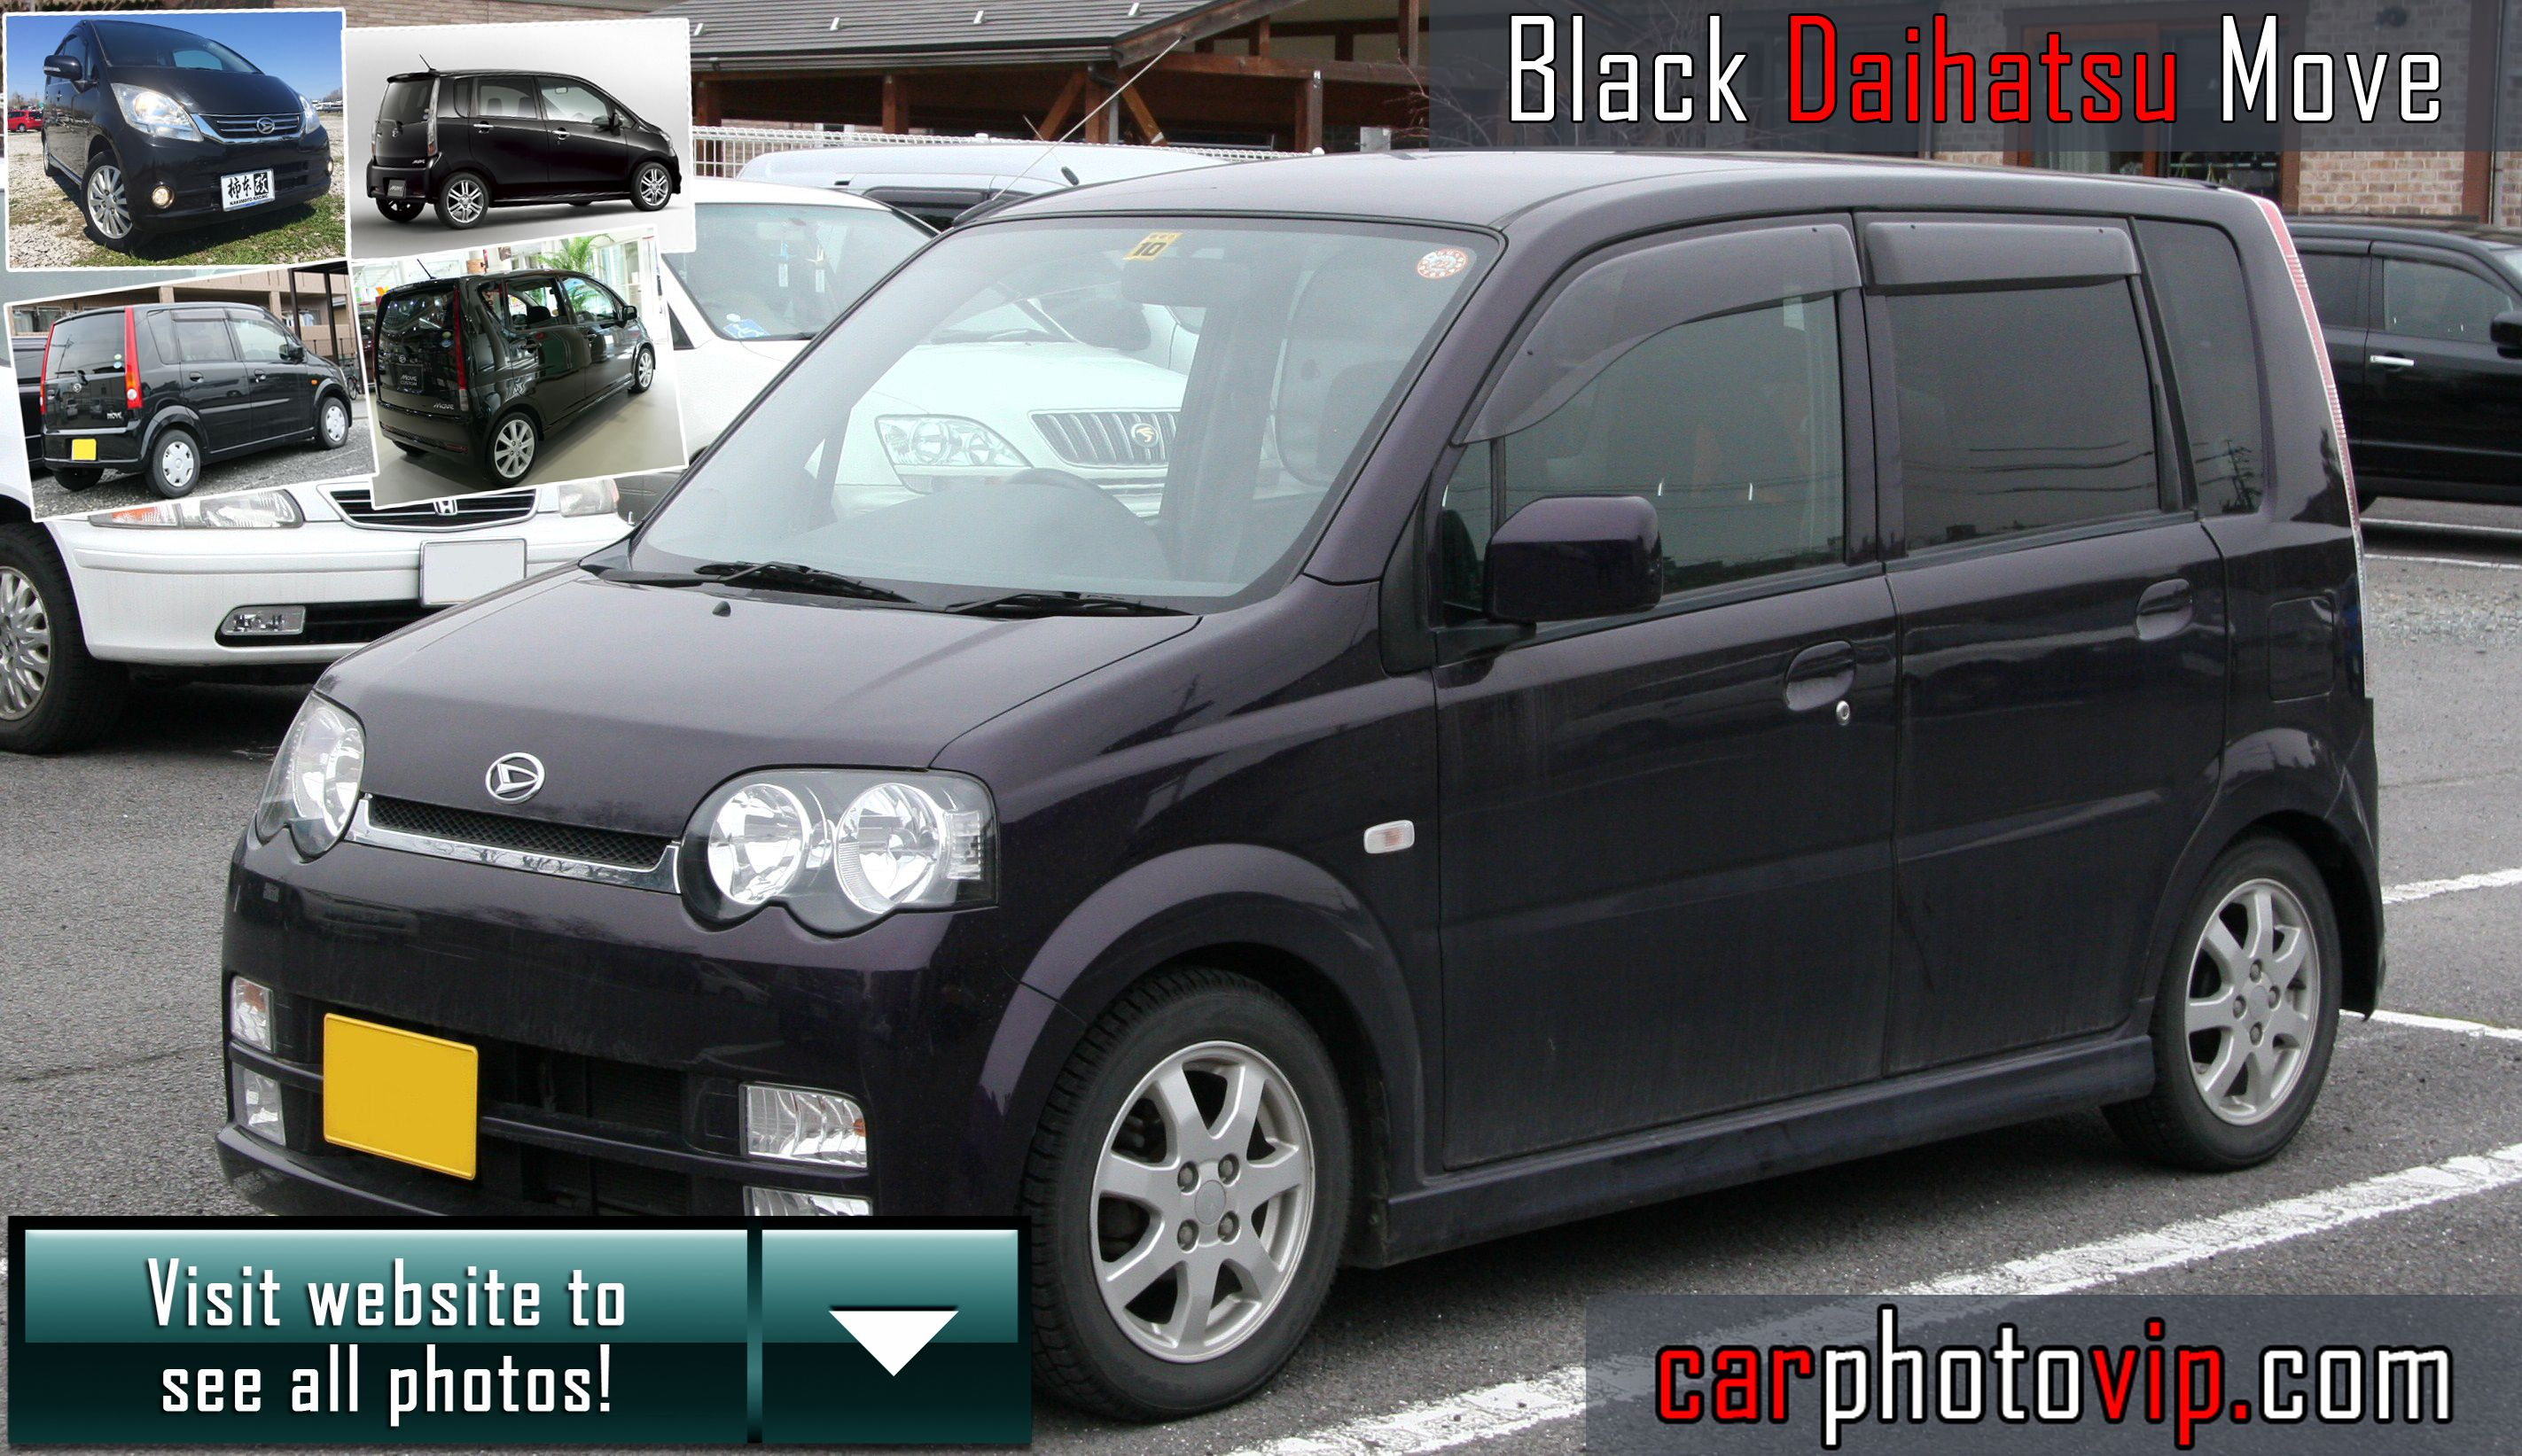 Black Daihatsu Move With Images Daihatsu Cool Cars Kei Car